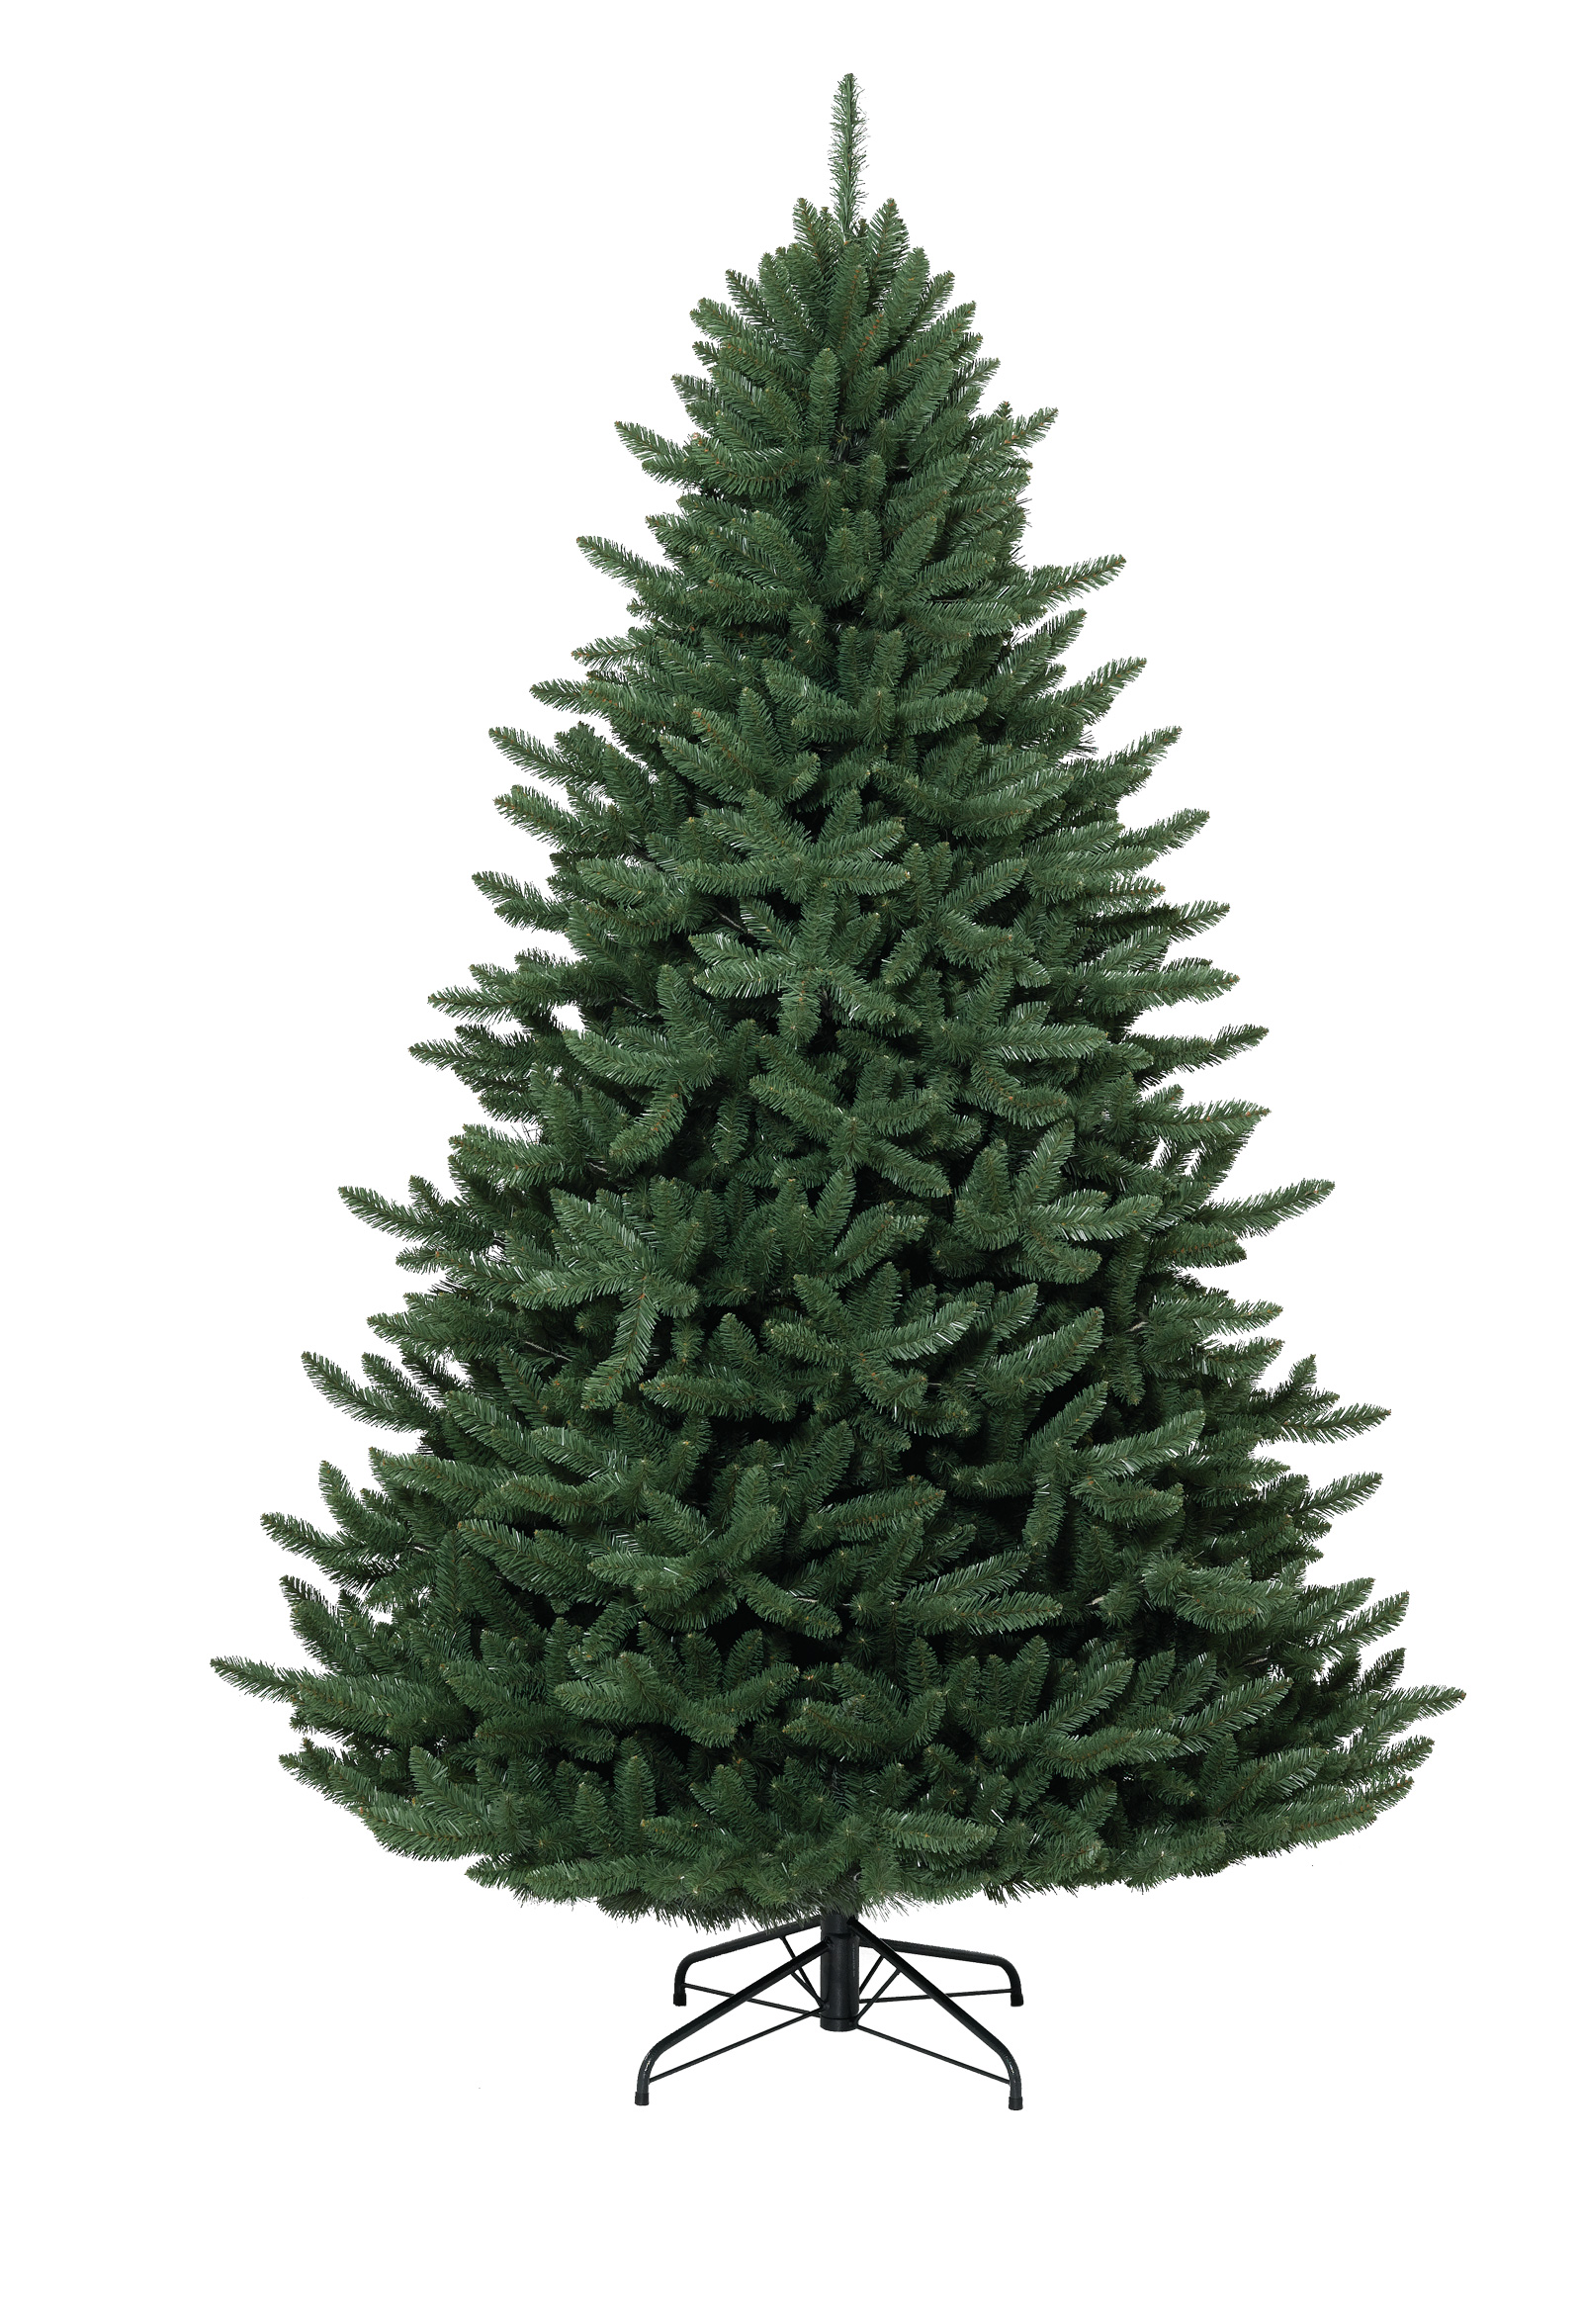 Superior Christmas Tree Without Lights Part - 2: 5.5 Foot Unlit Eastern Spruce Artificial Christmas Tree